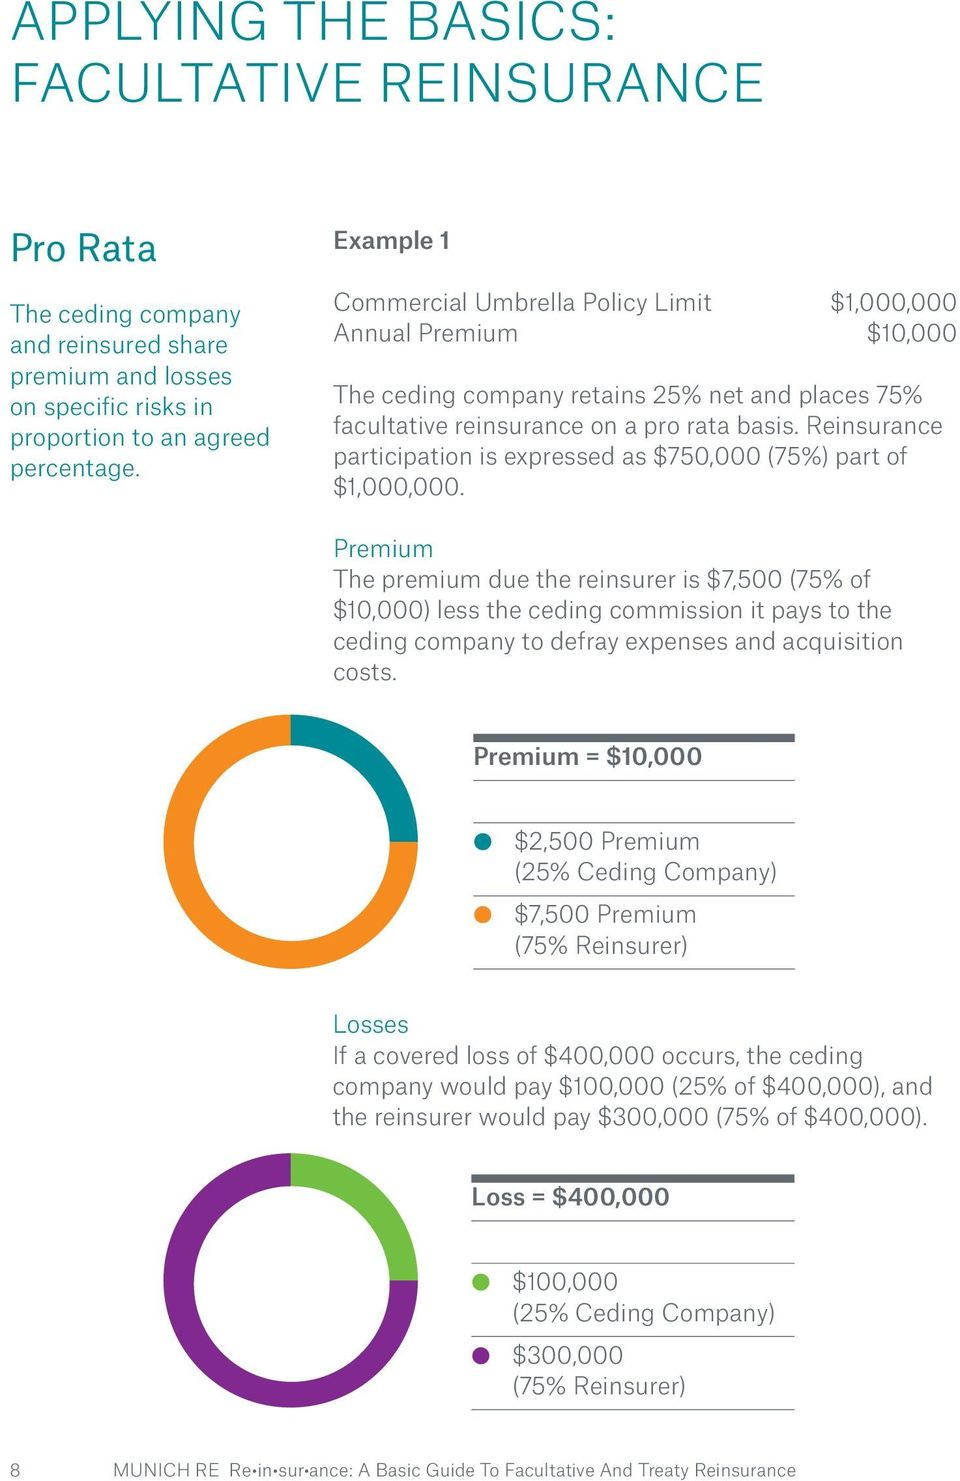 Reinsurance participation is expressed as $750,000 (75%) part of $1,000,000.